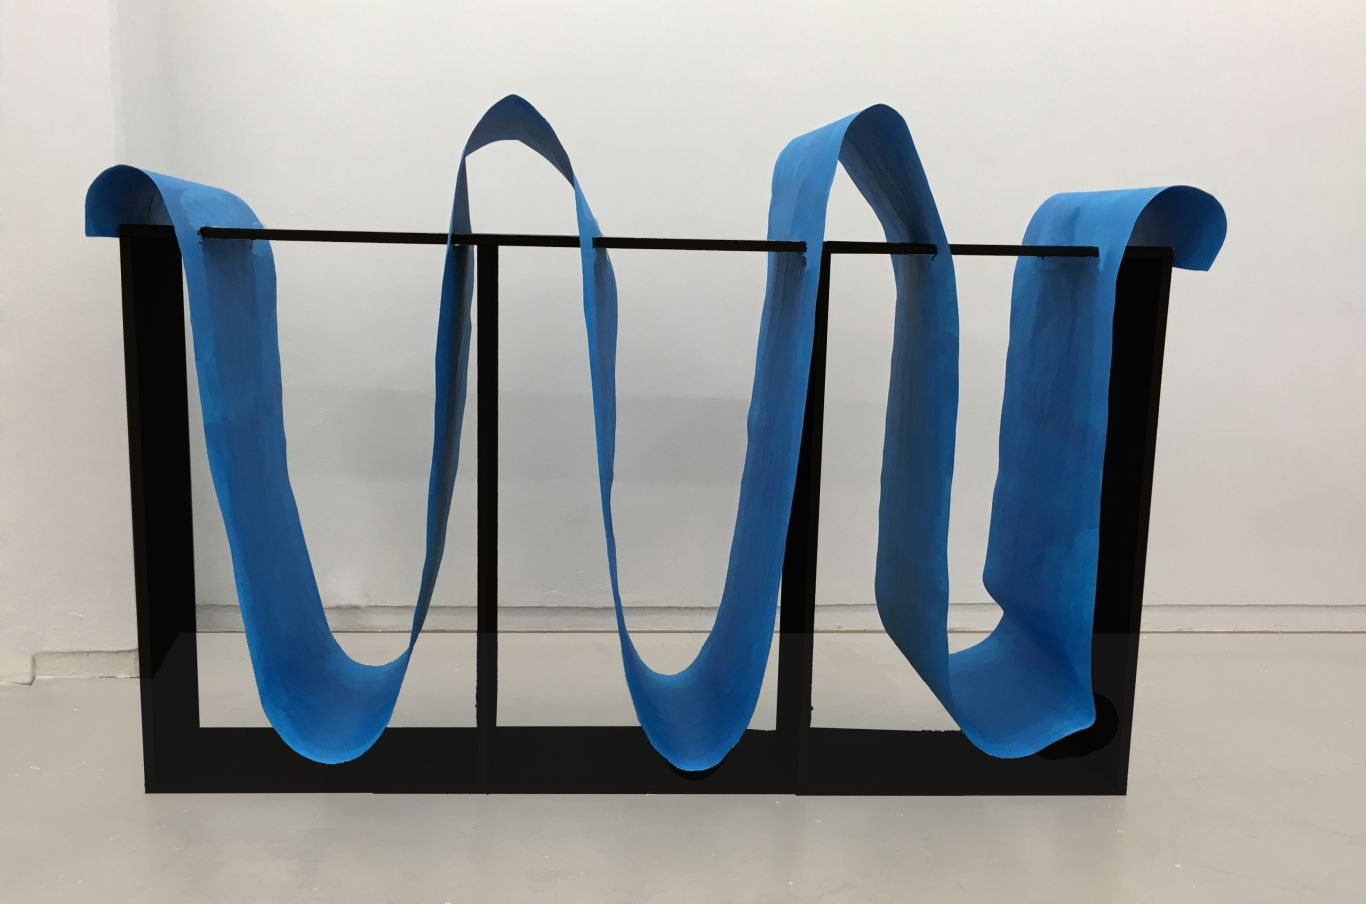 Páll Haukur Björnsson, Blue & black monochrome (the whale and the wave), drawing, 2018 acrylic on paper and mdf, 240x160x75cm.